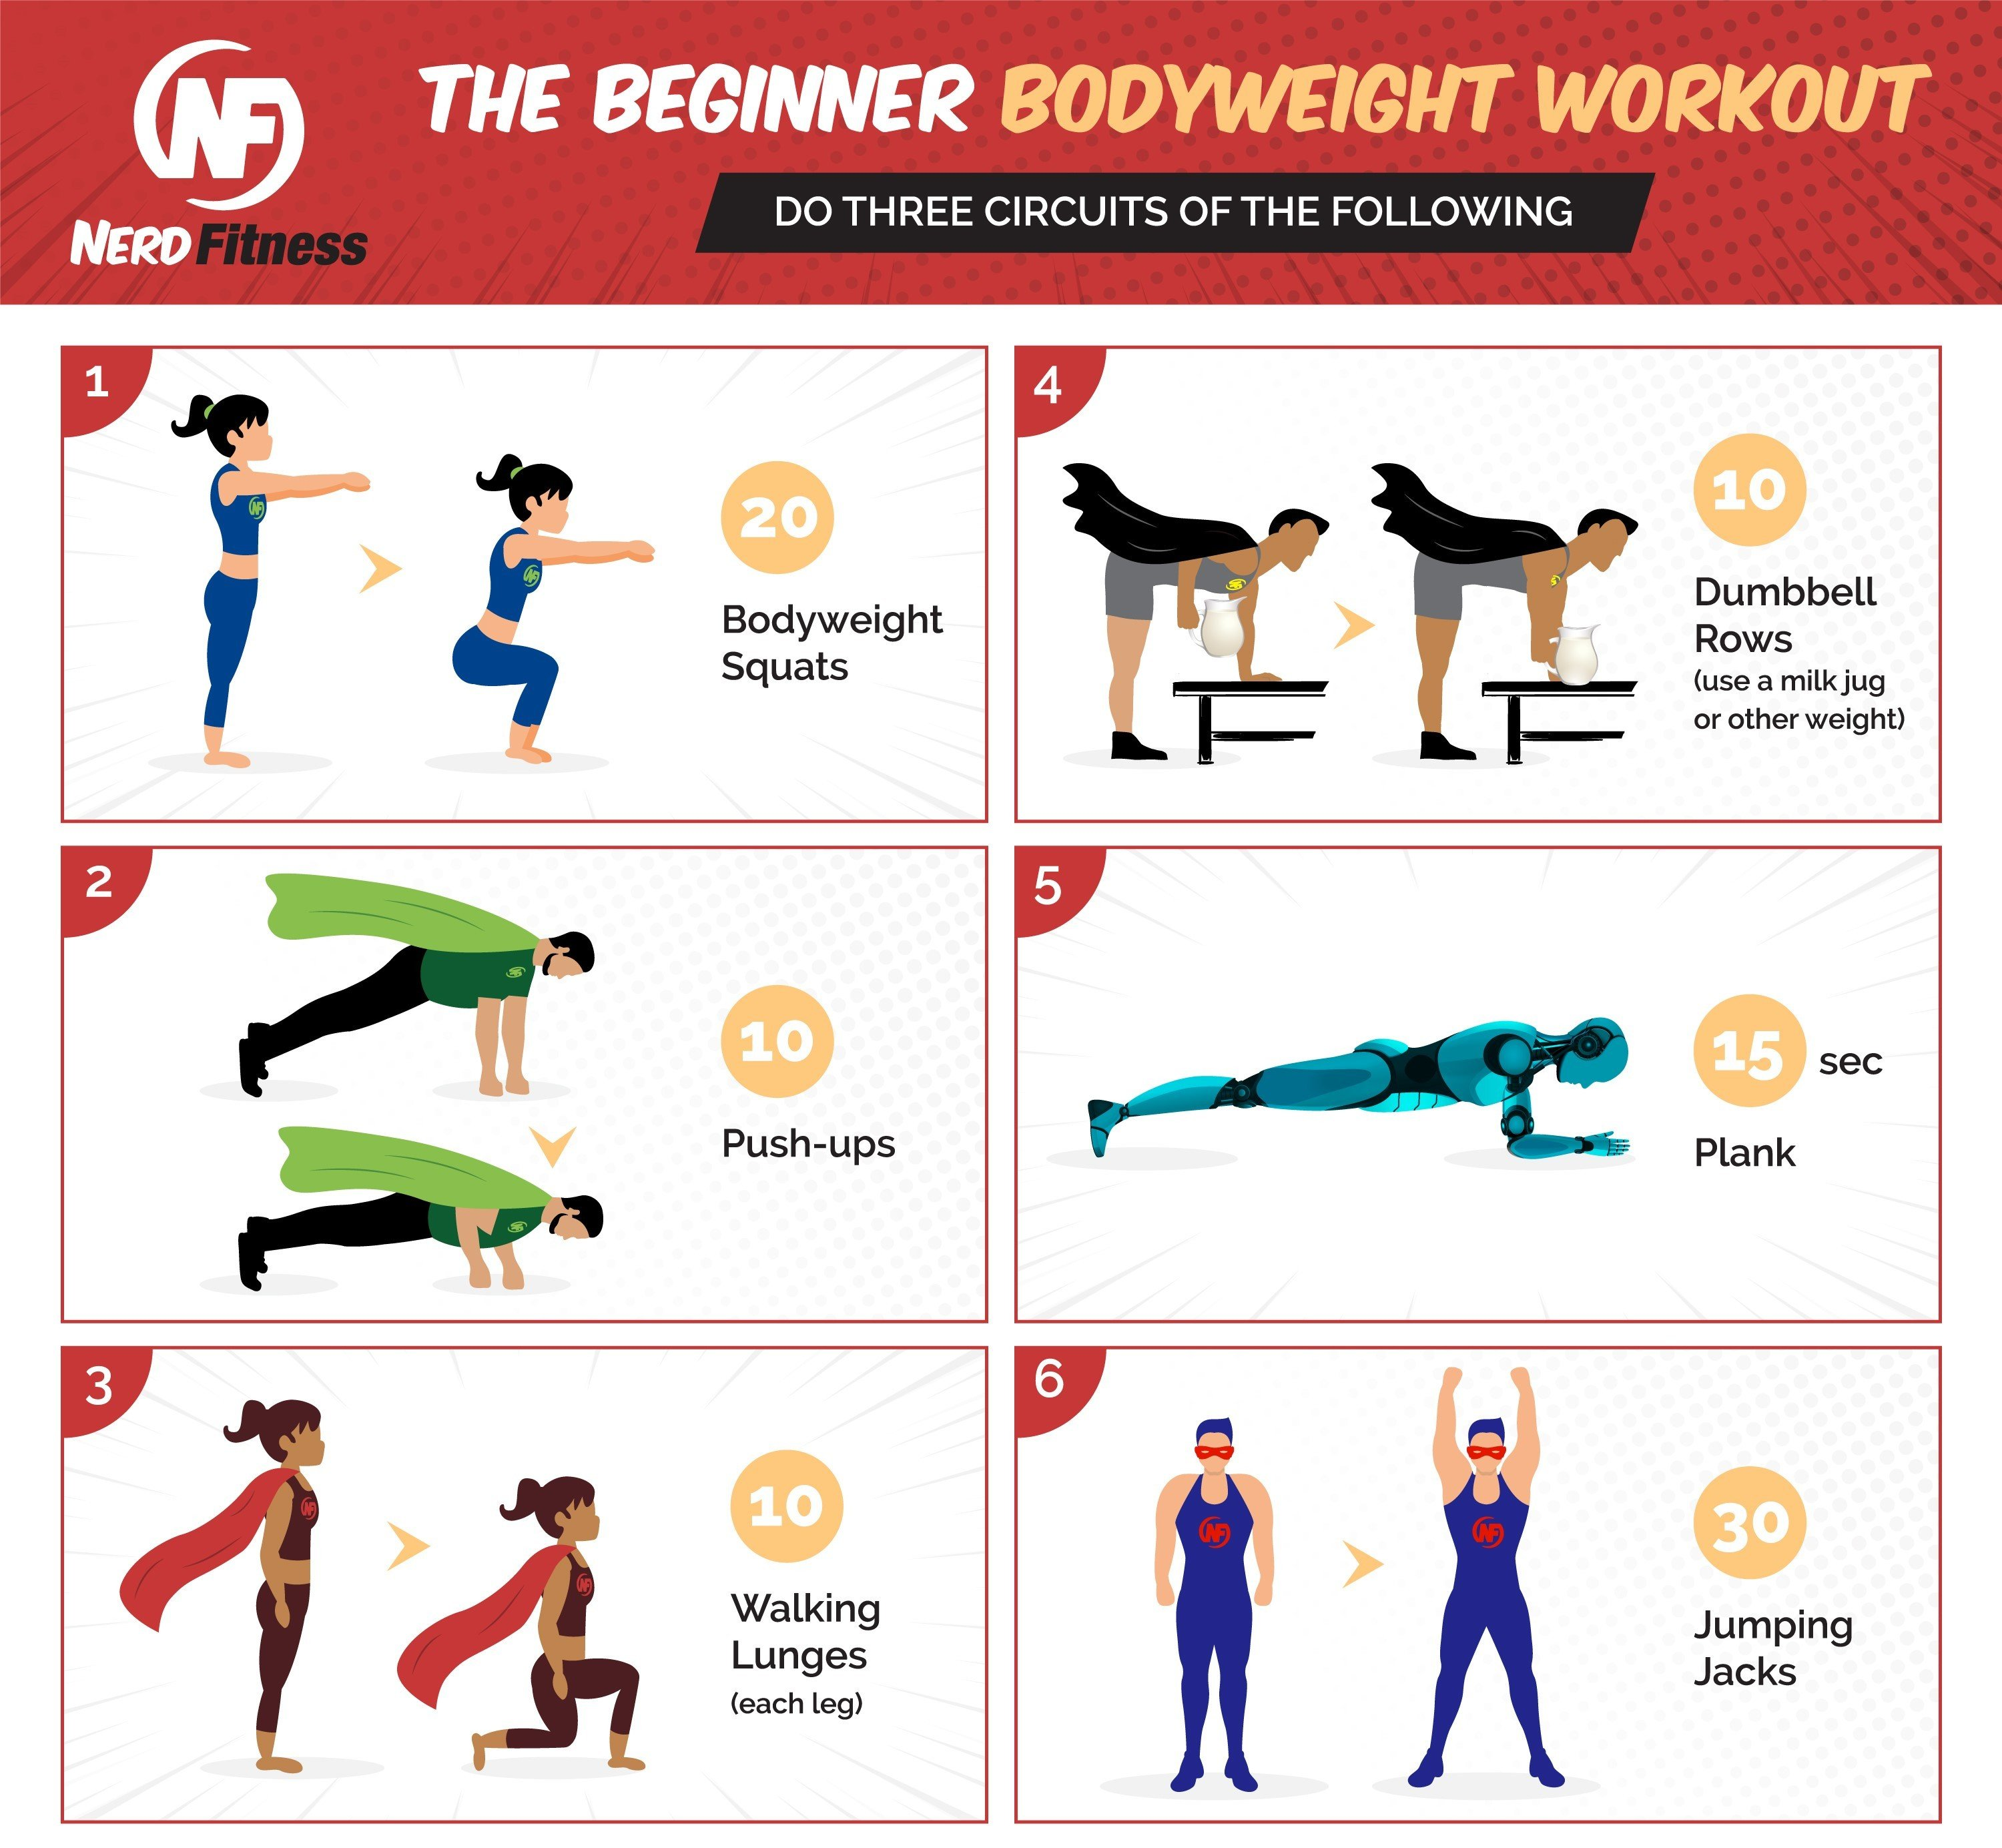 This infographic will show you the 6 exercises needed to complete our Beginner Bodyweight Workout.